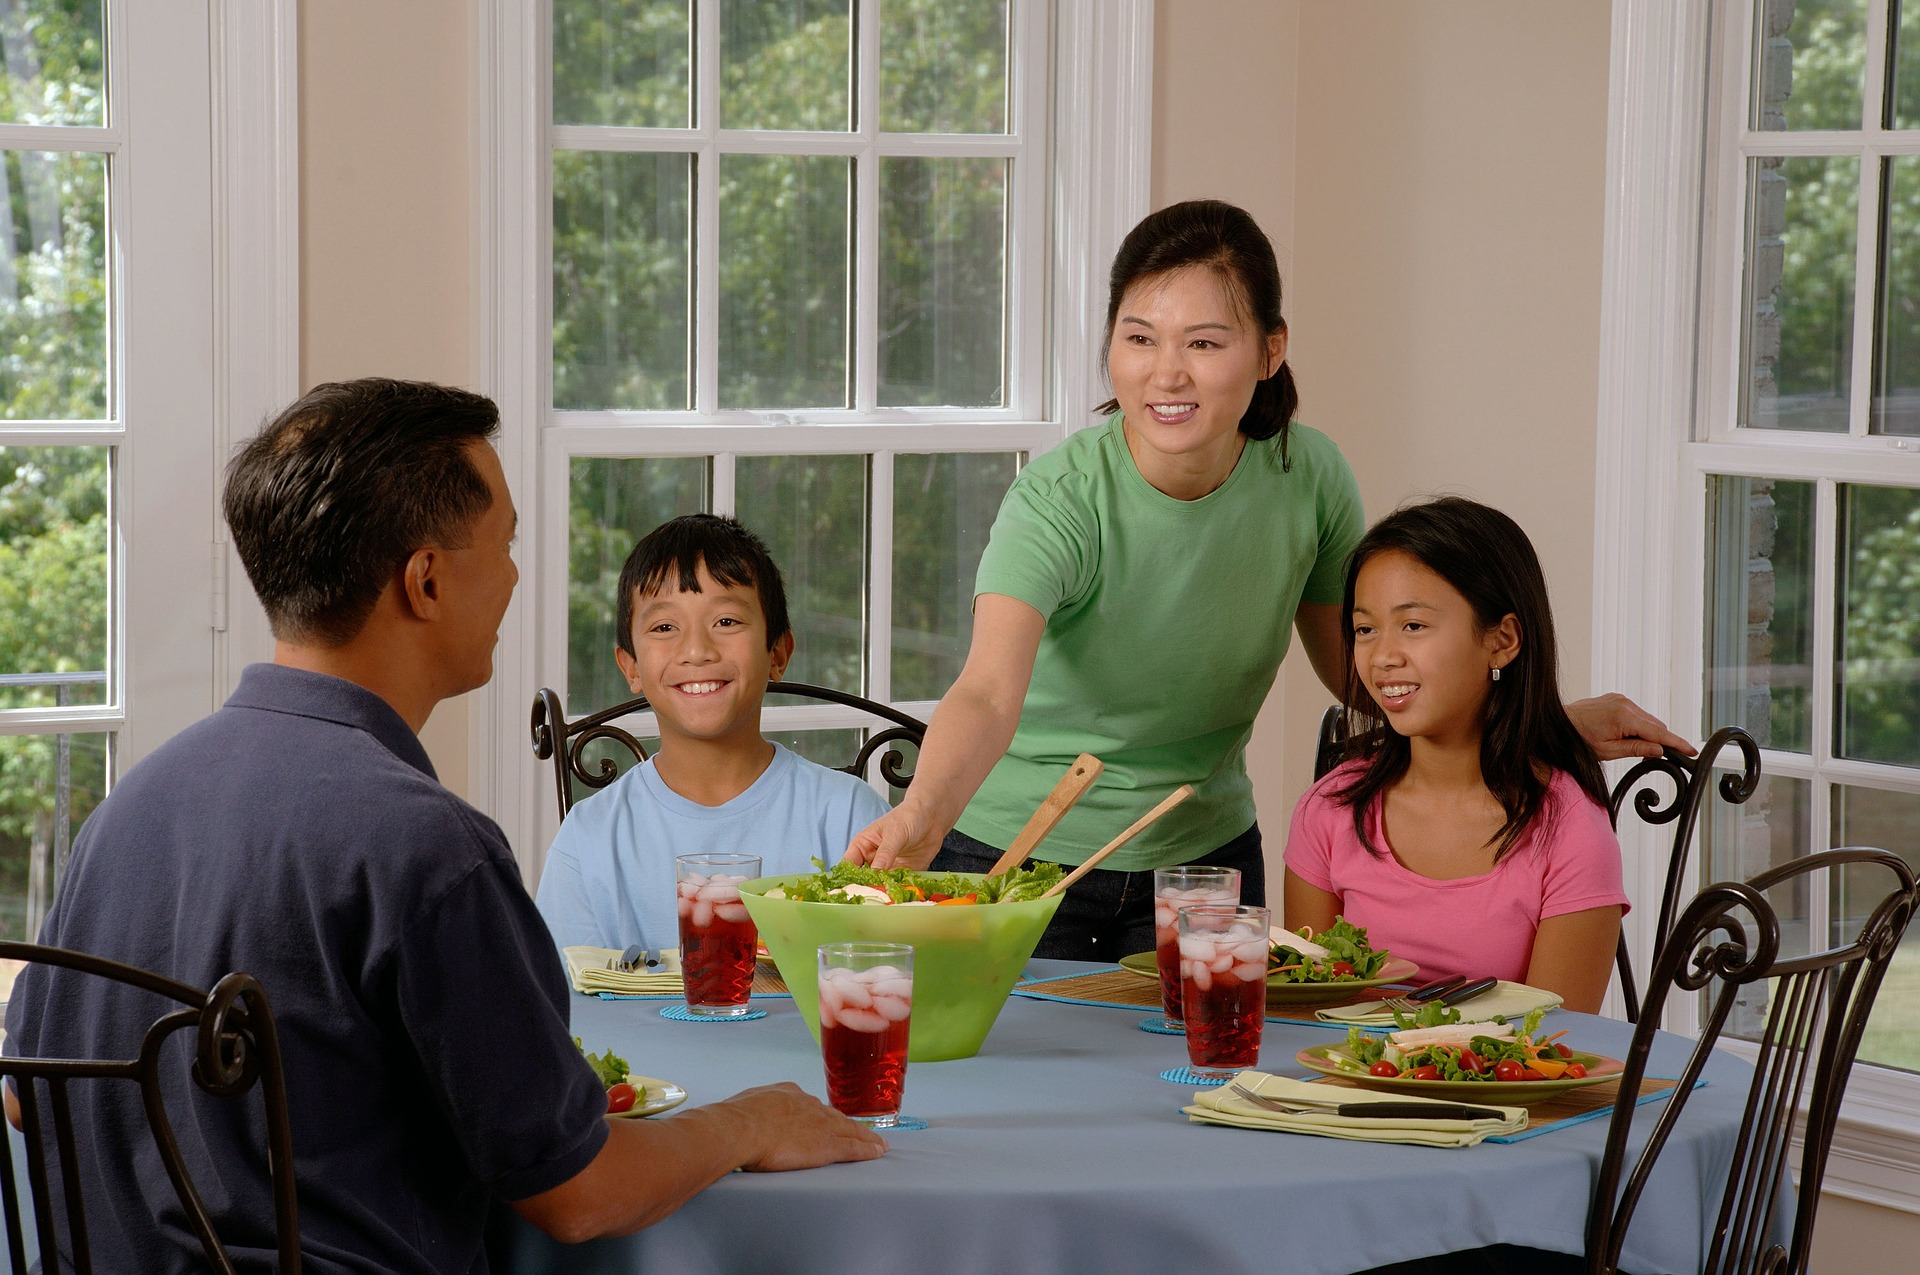 family-eating-at-the-table-619142_1920.jpg